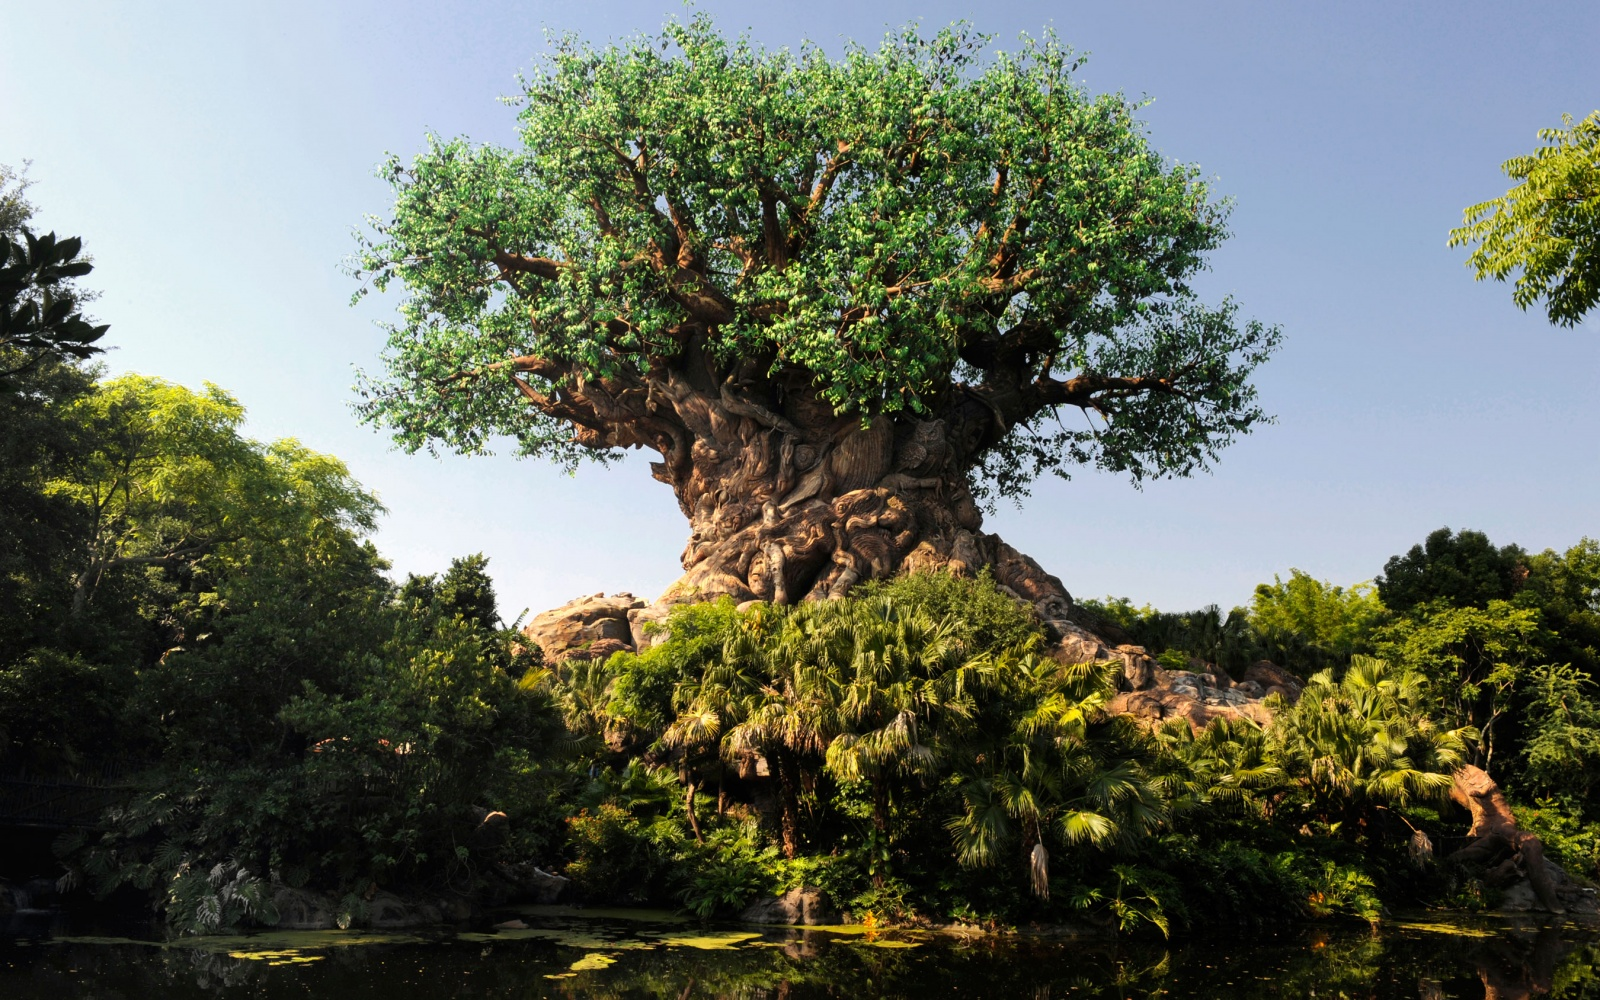 Disney's Animal Kingdom at Walt Disney World, Buena Vista, Florida